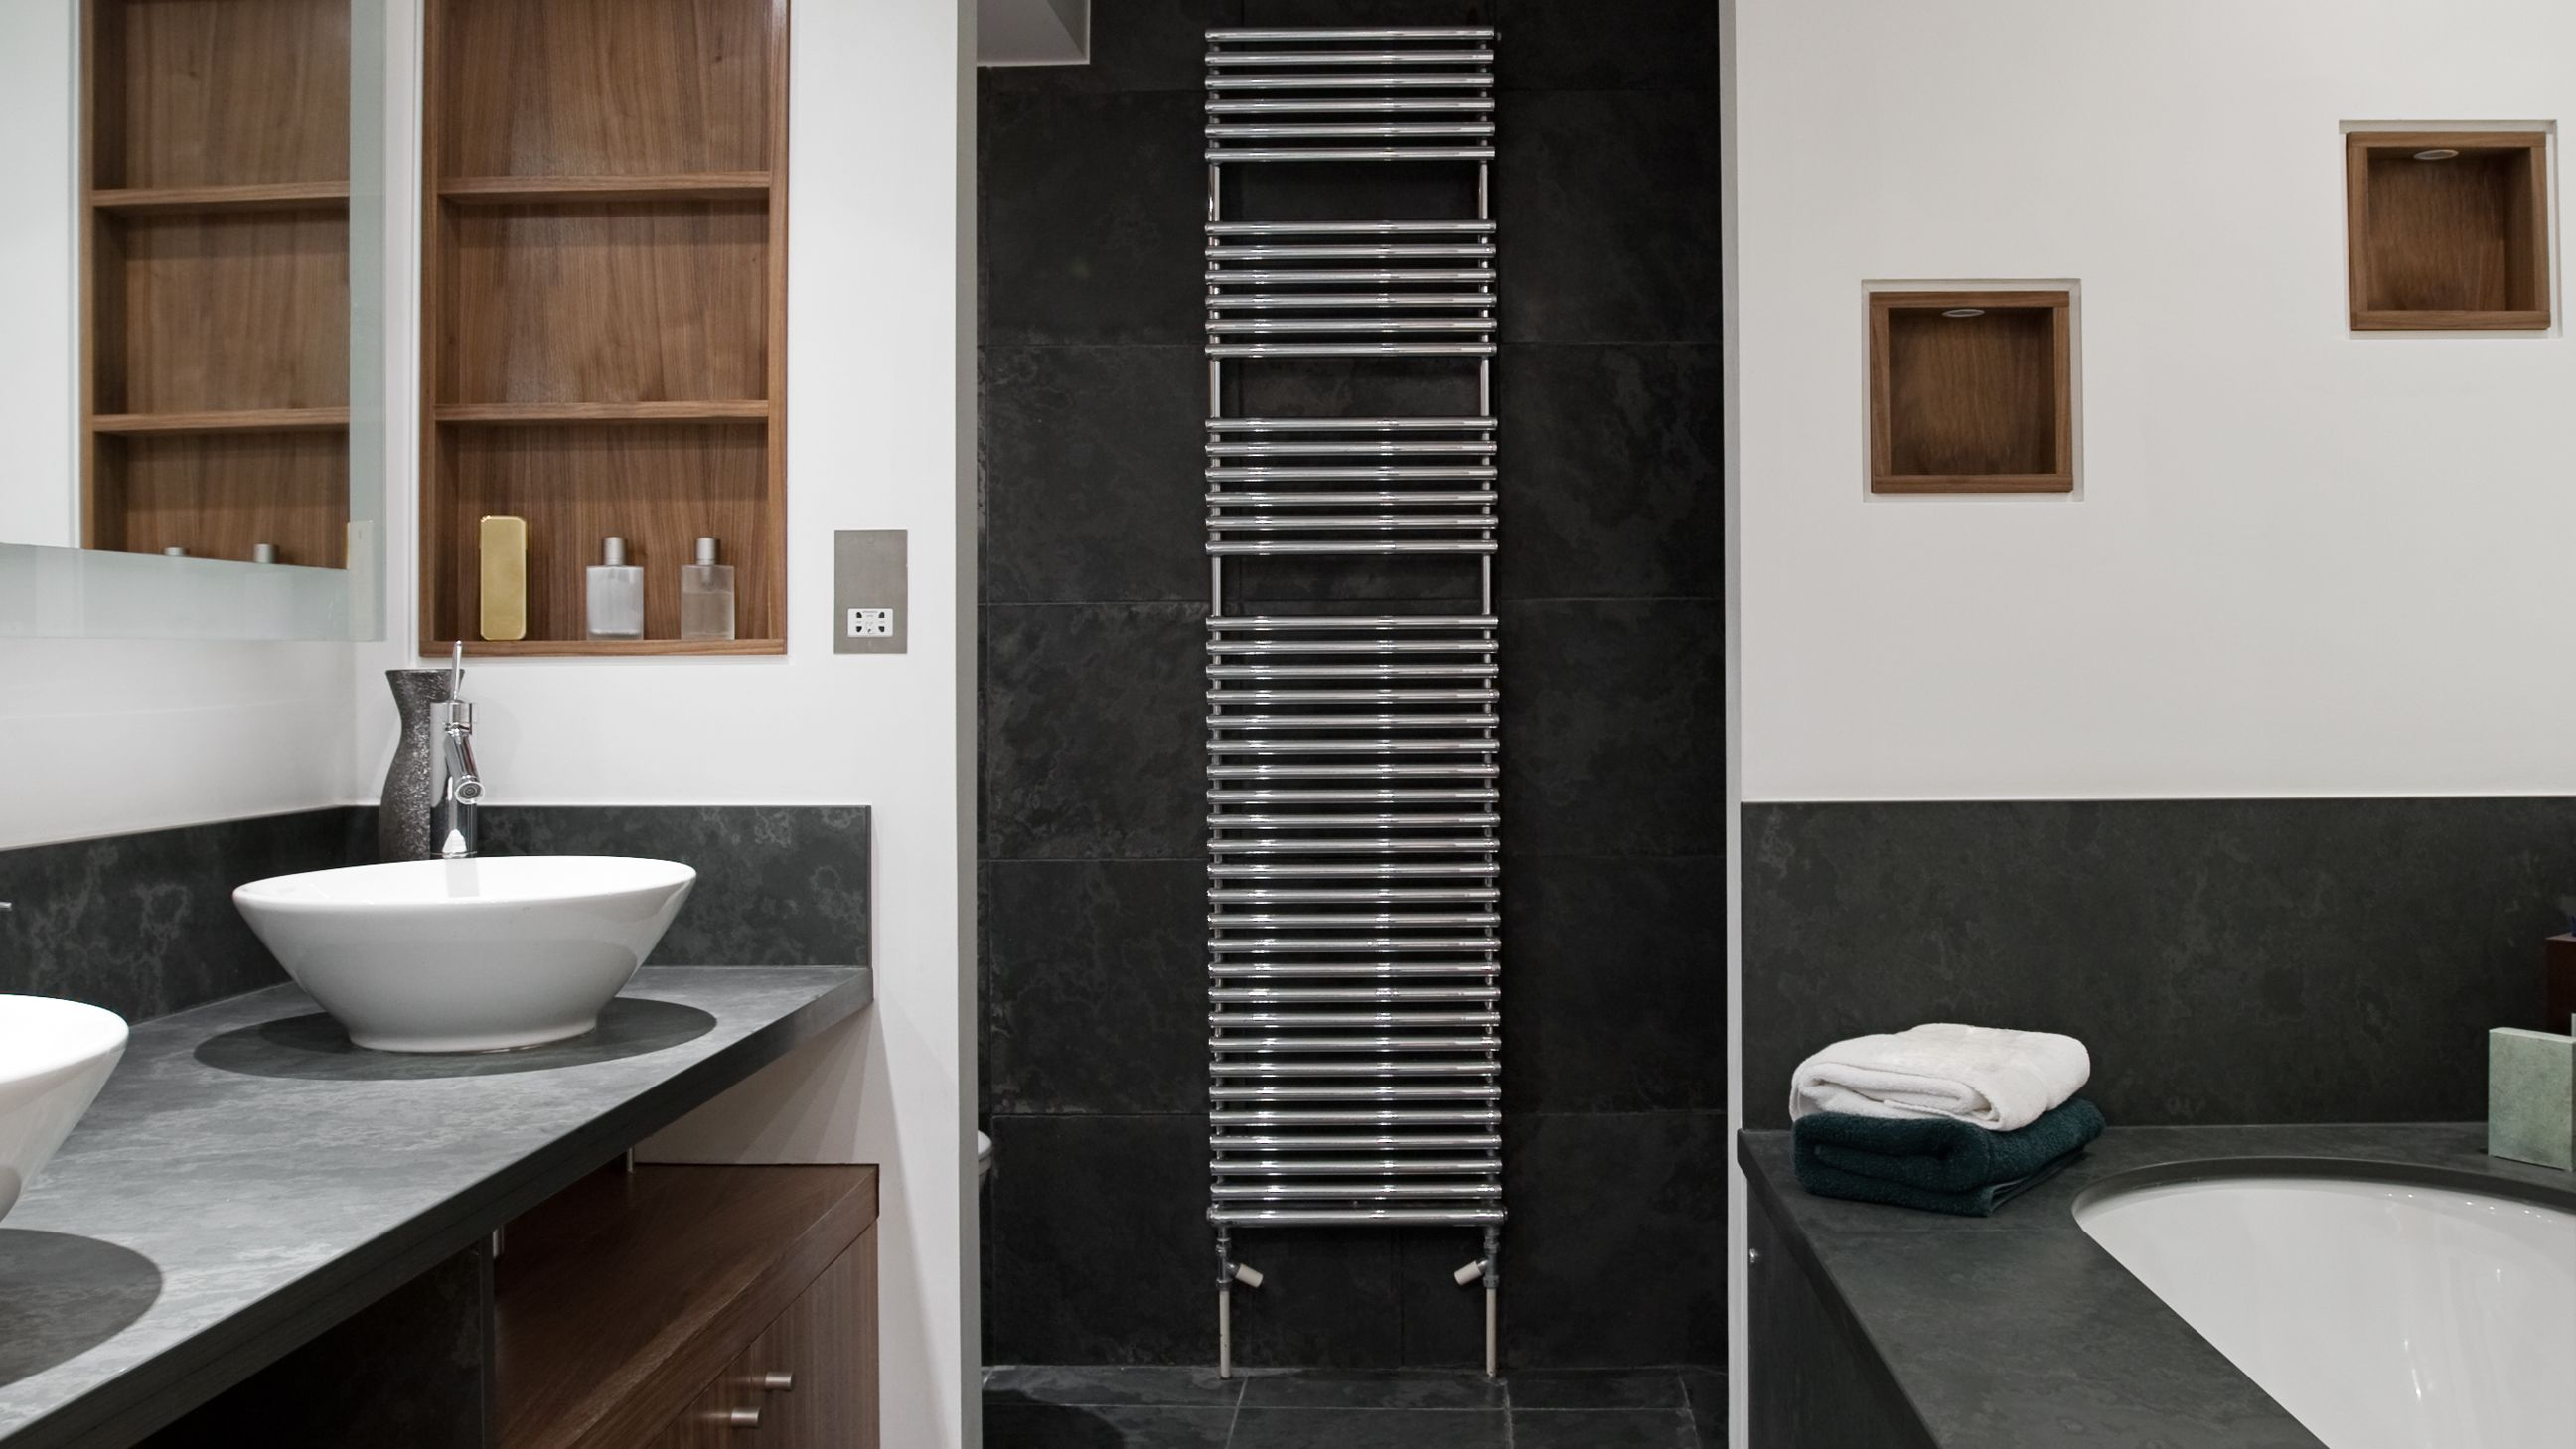 Bathroom heating system buying guide